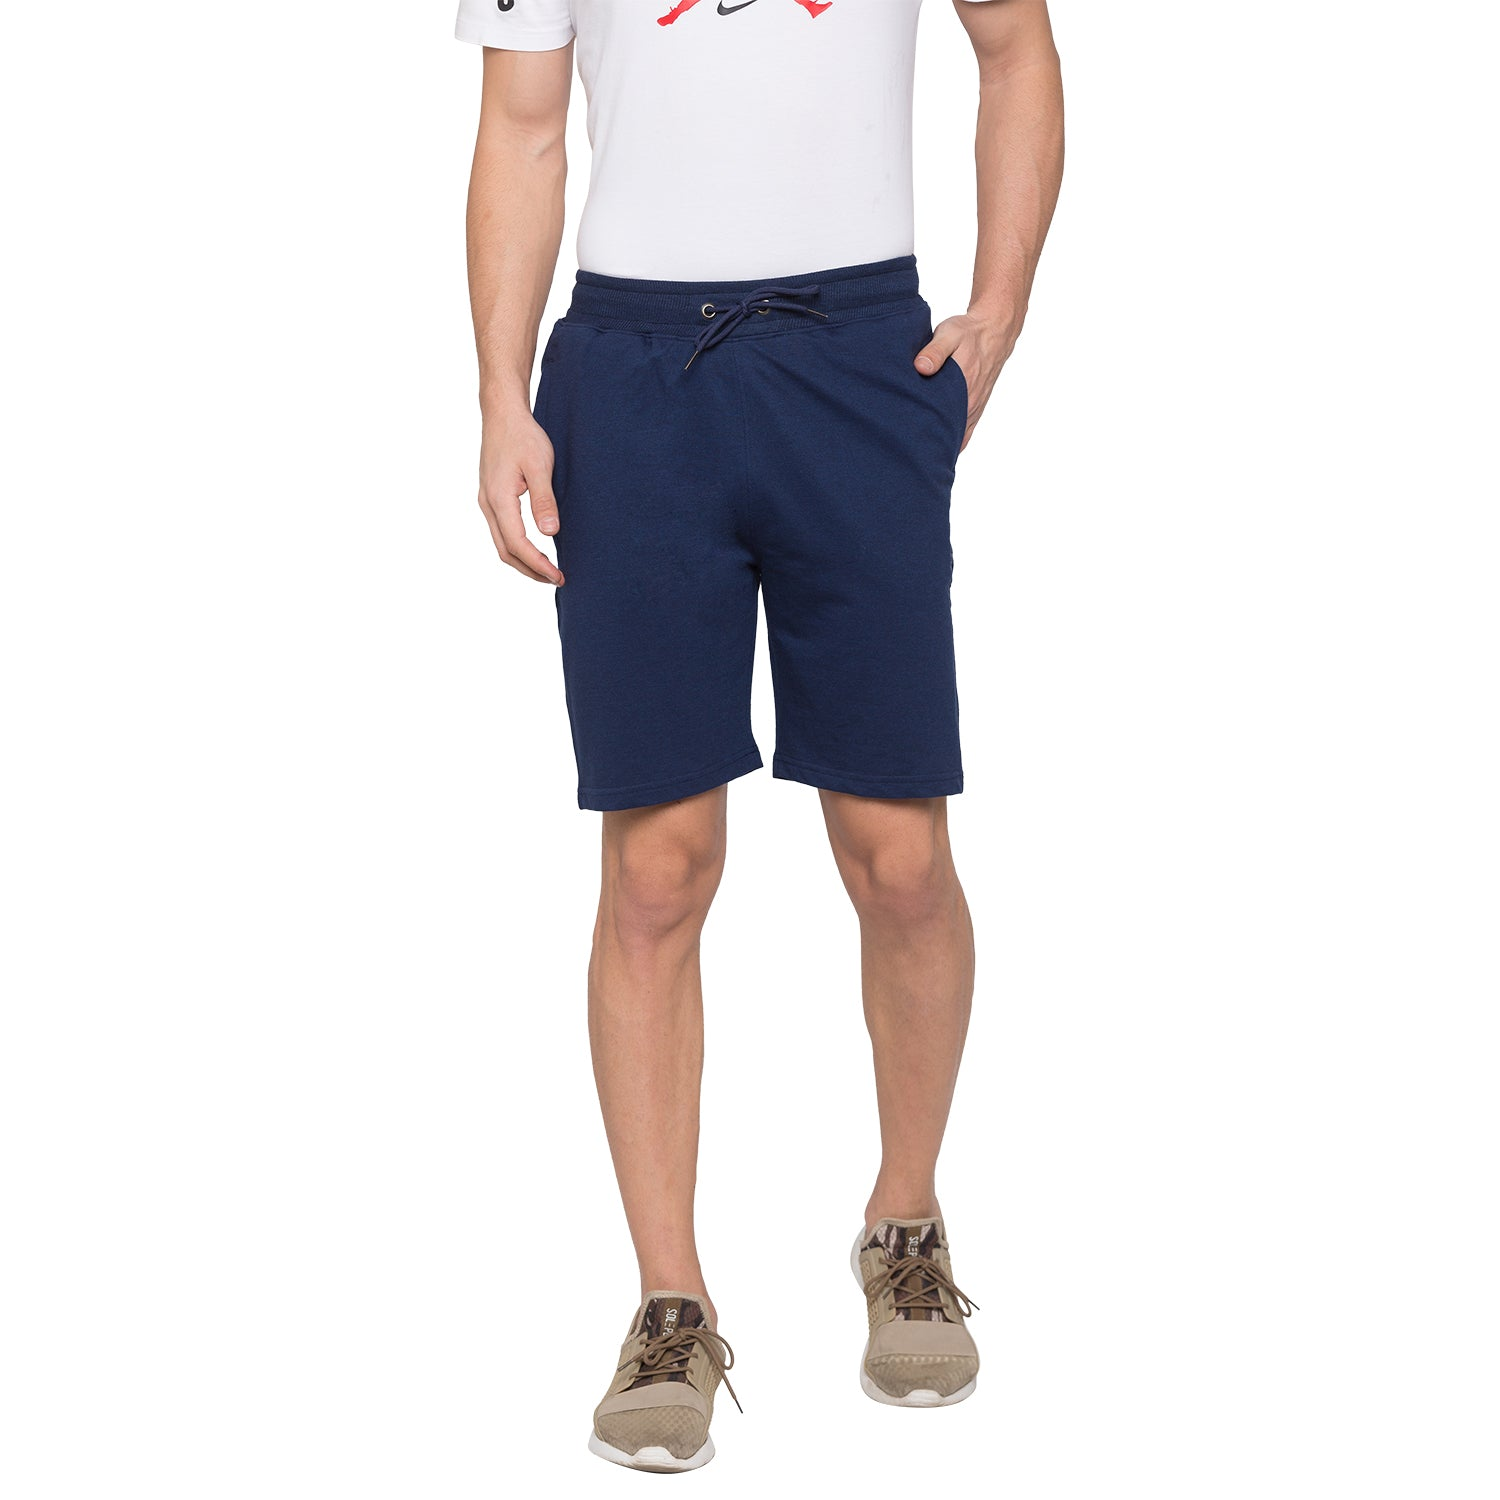 Globus Navy Blue Solid Shorts1